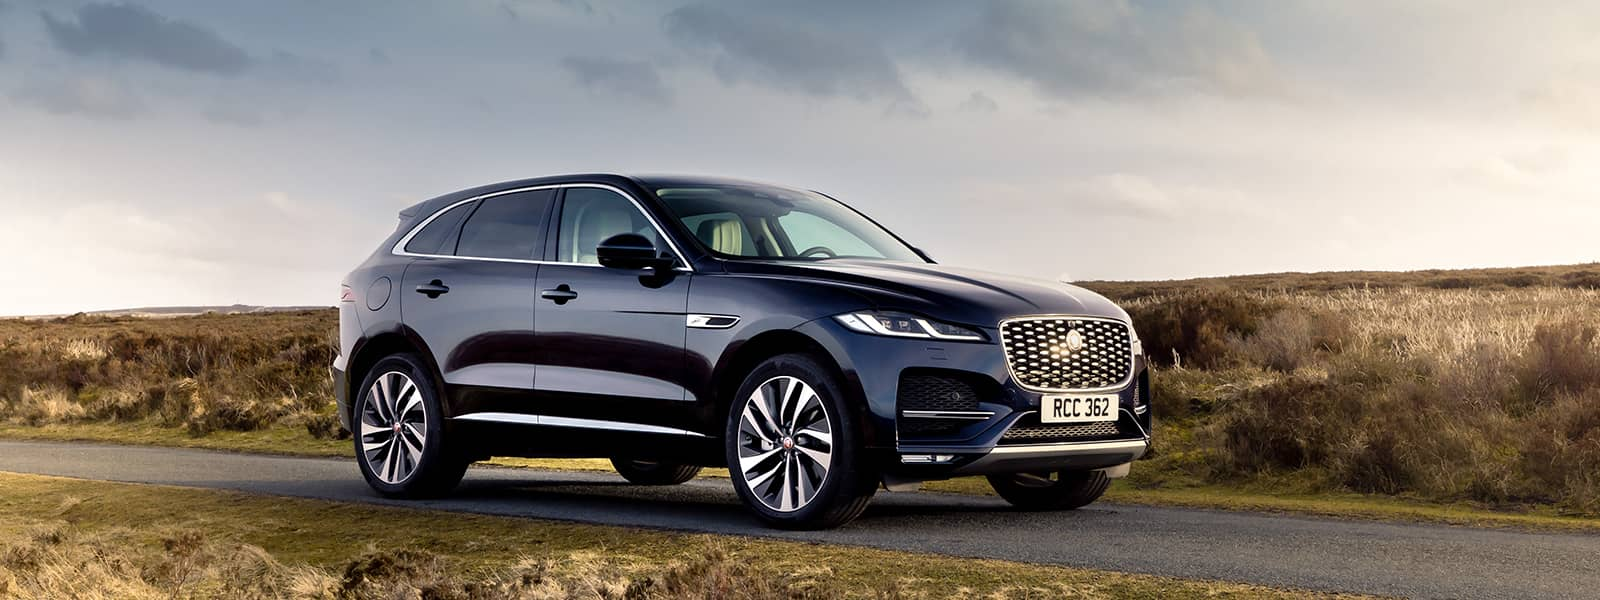 f pace interieur hybride rechargeable